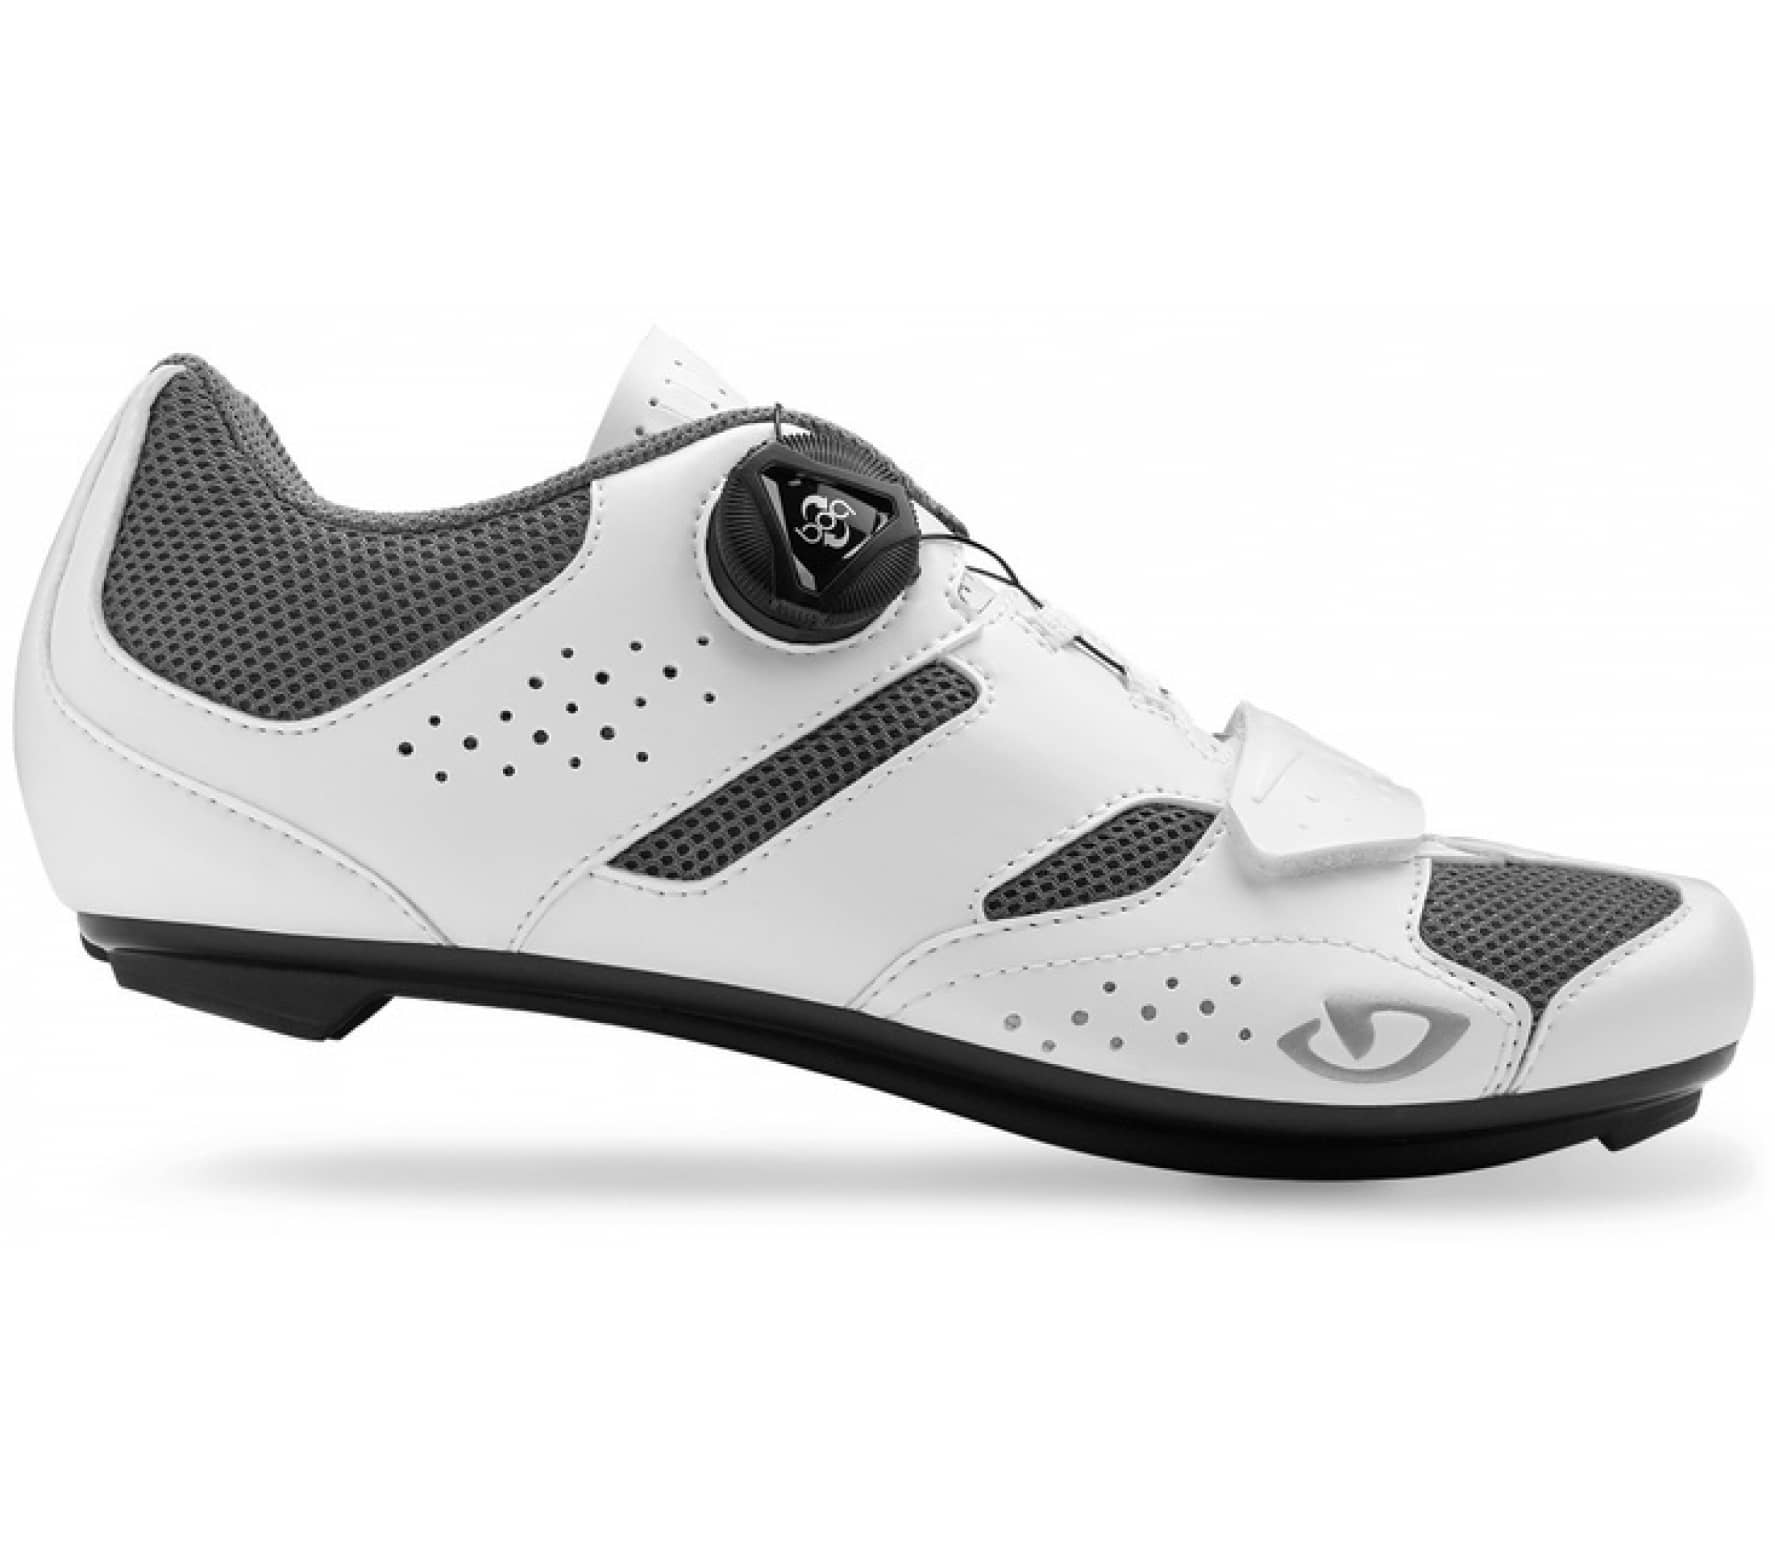 e7dee5046fd Giro - Savix W women s Road Shoe (white grey) - buy it at the Keller ...